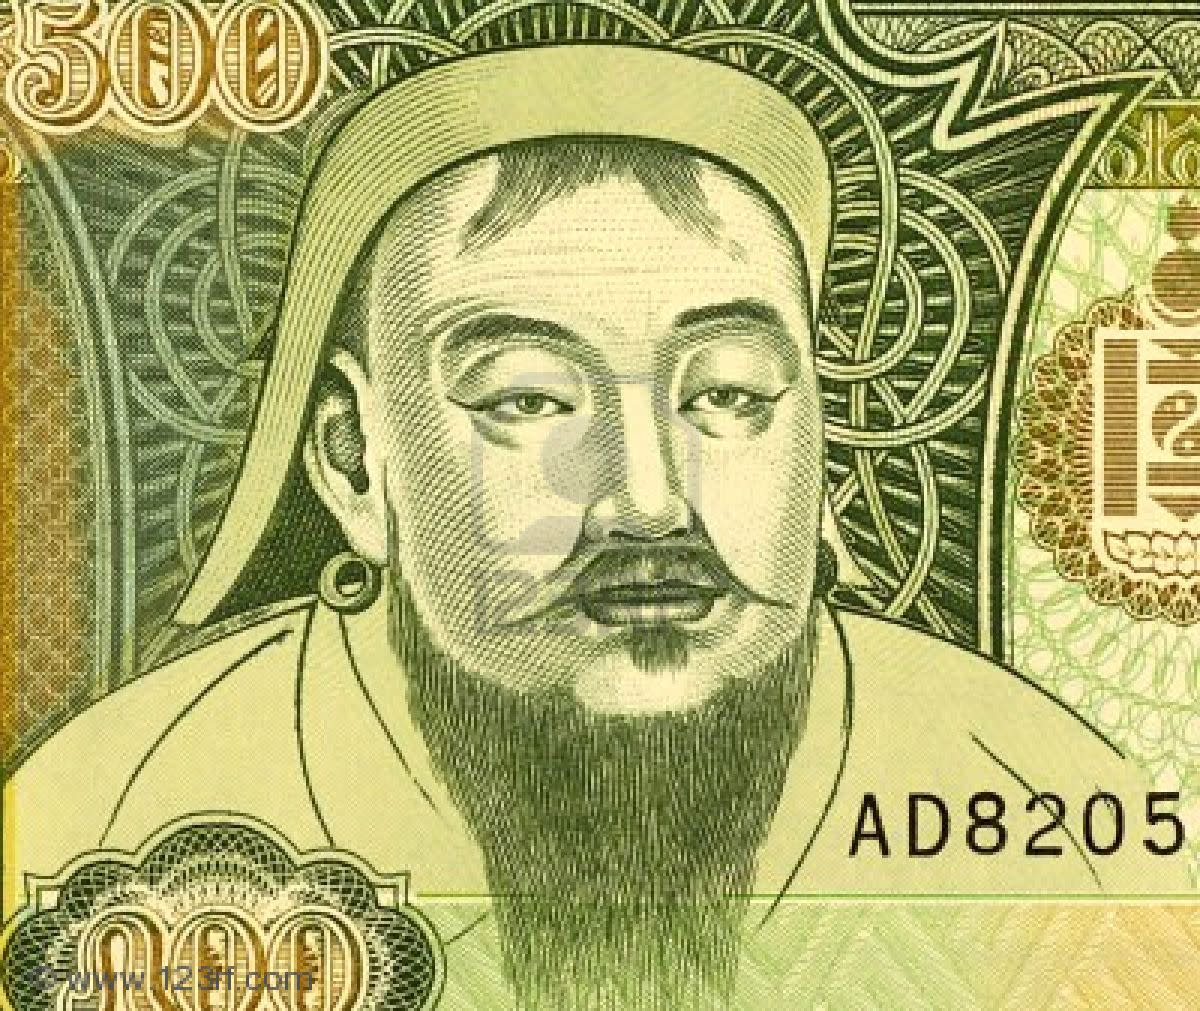 Genghis Khan on the 1997 Mongolian Currency